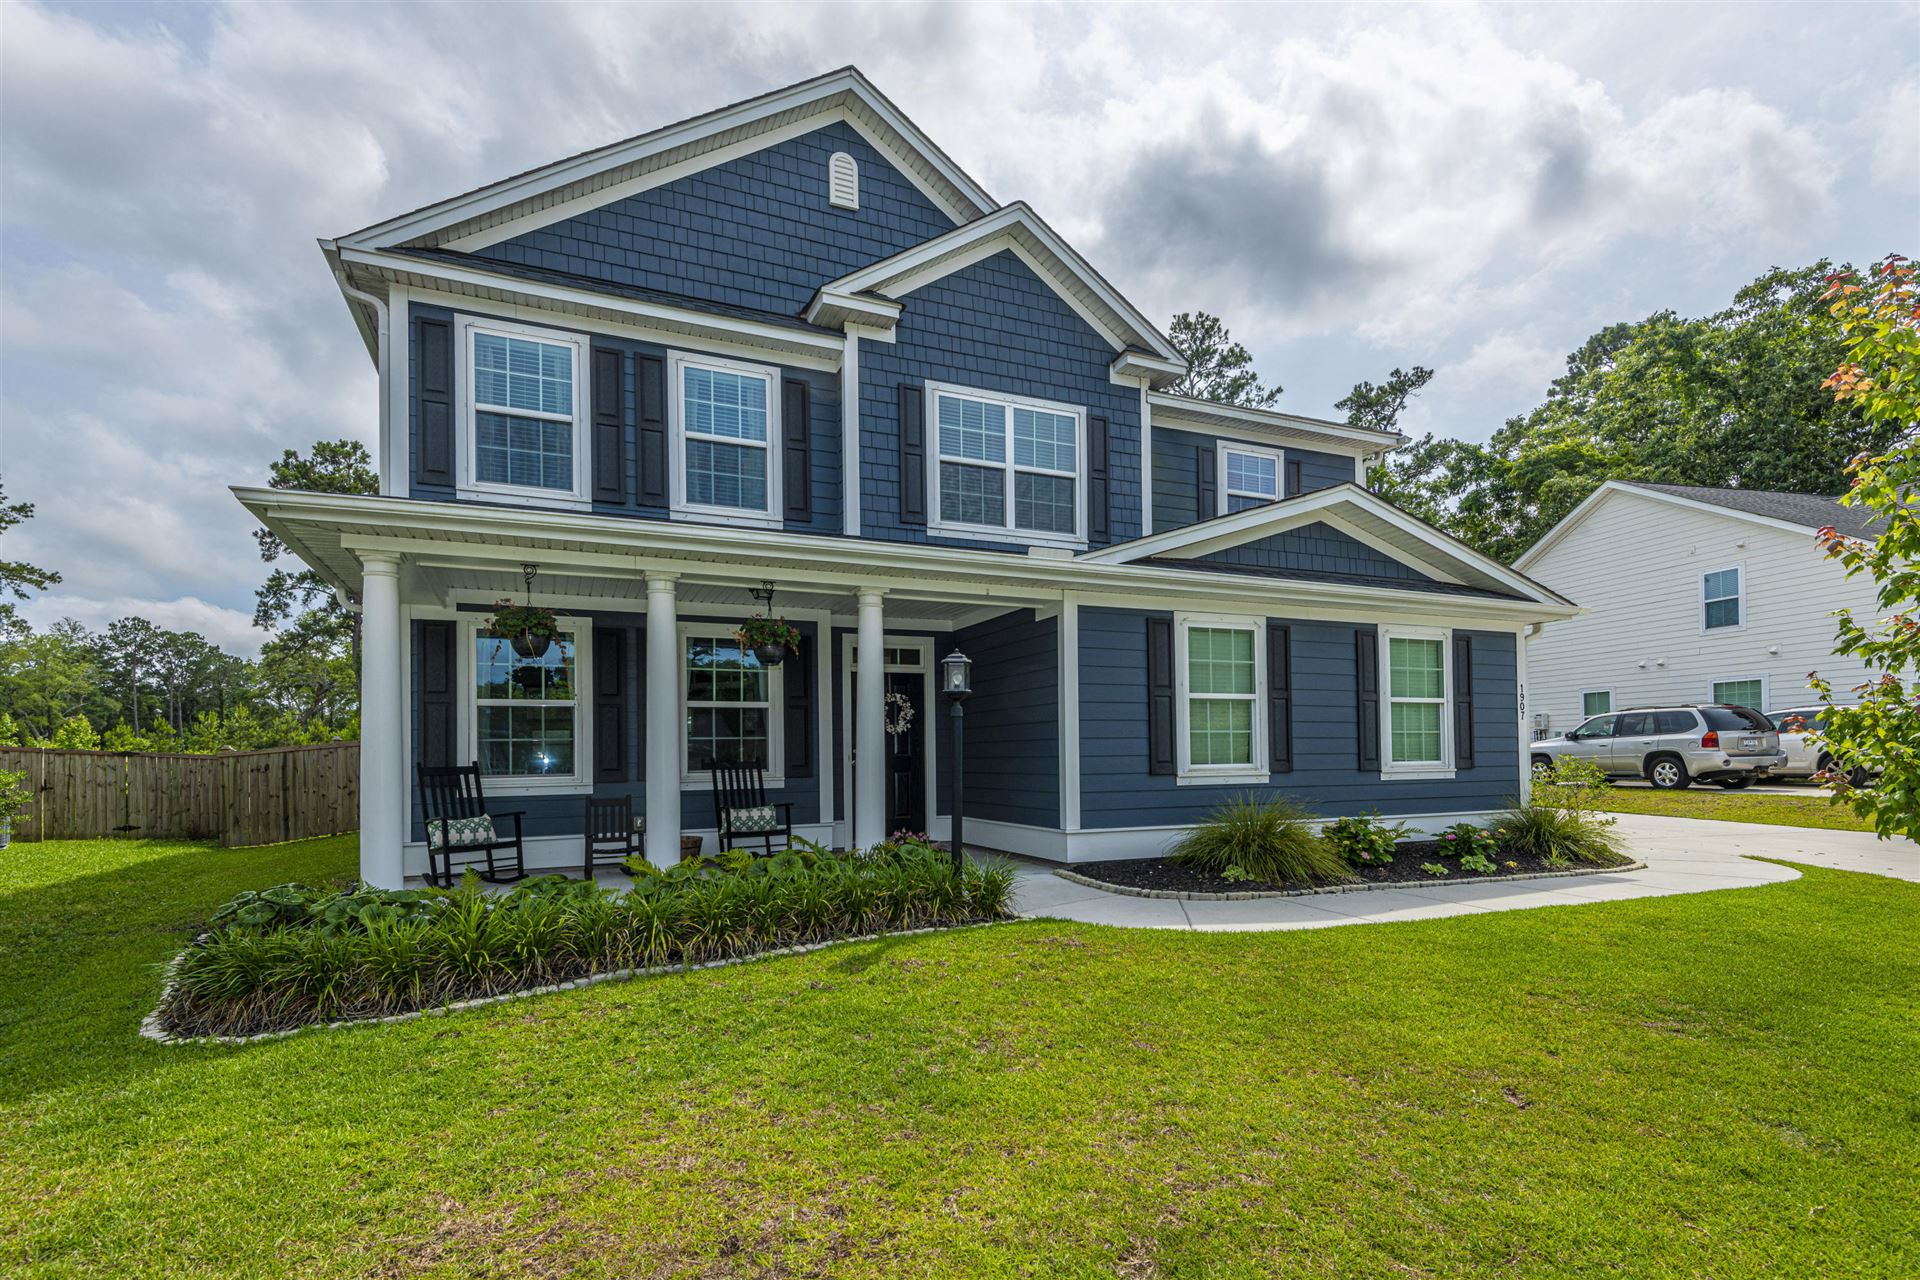 Photo of 1907 Blue Bayou Boulevard, Johns Island, SC 29455 (MLS # 20014118)